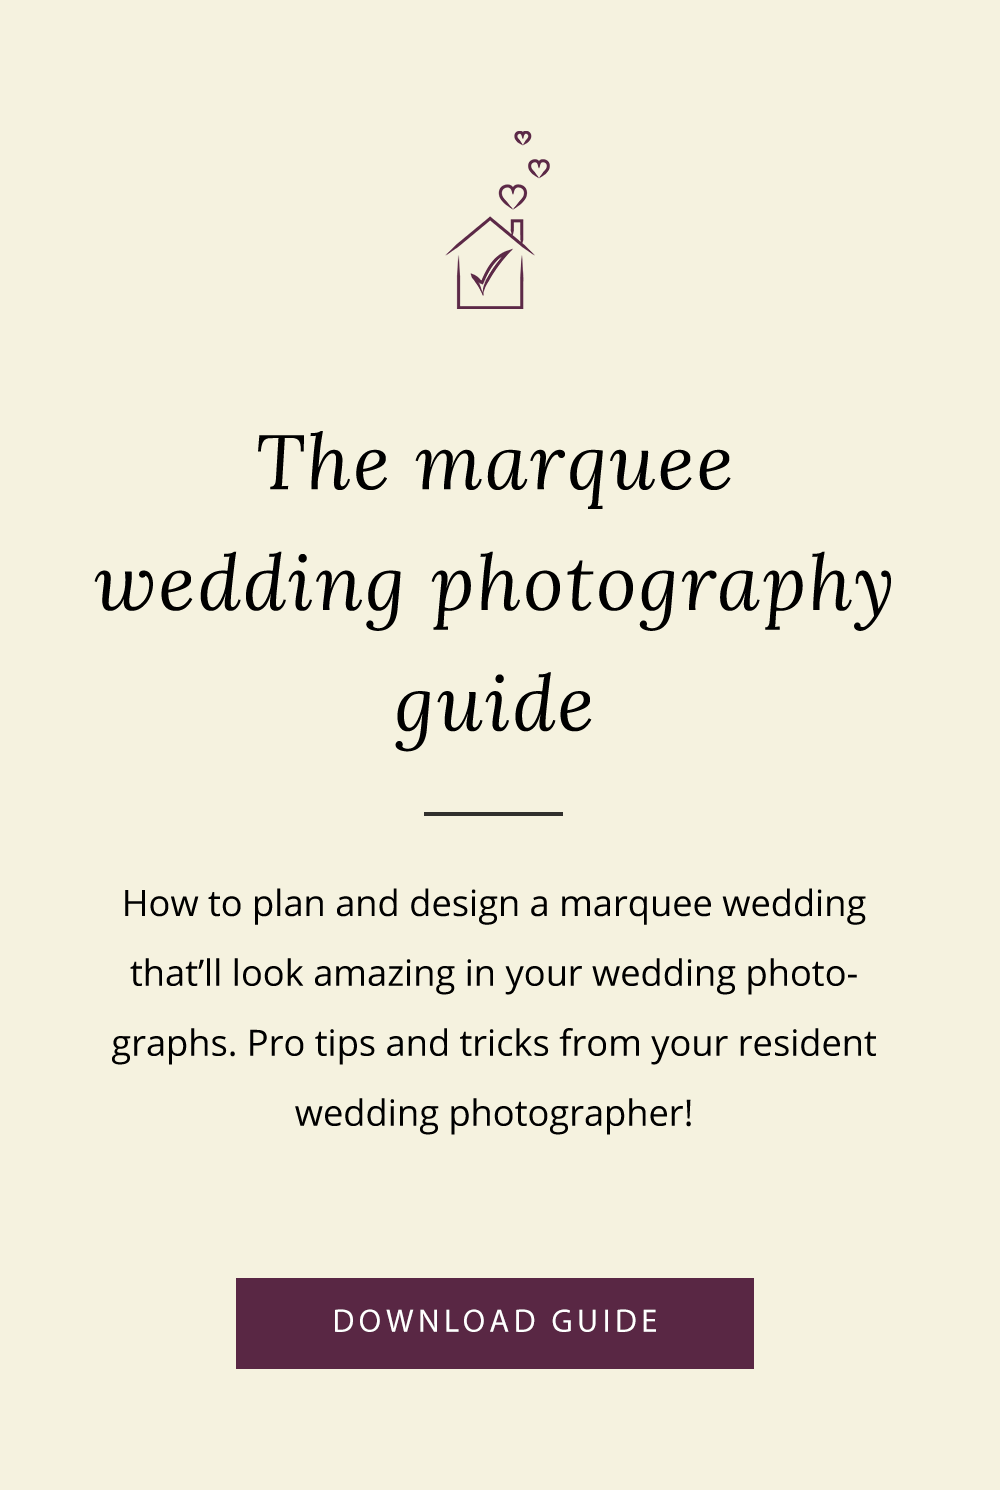 Photography advice for marquee weddings at home